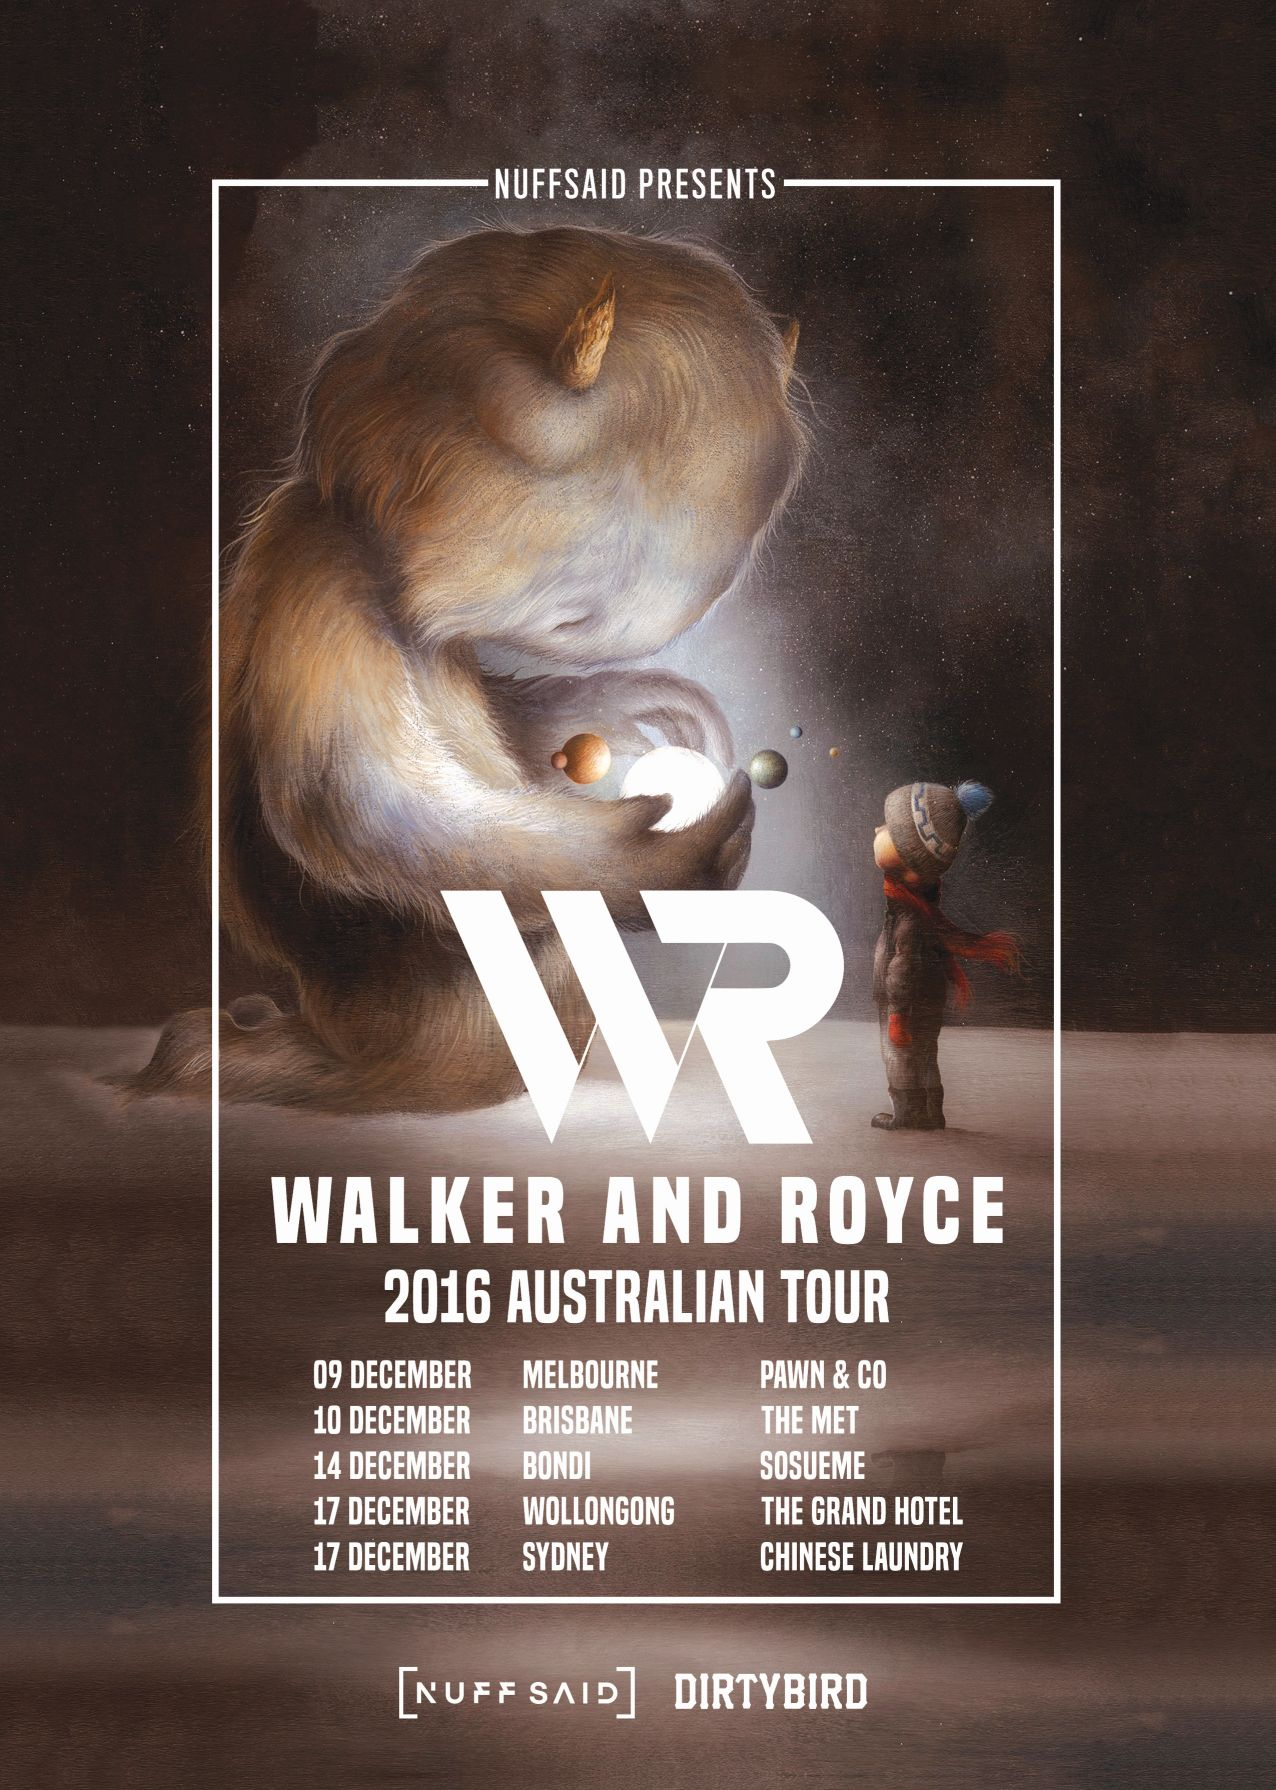 walker-royce-2016-australian-tour